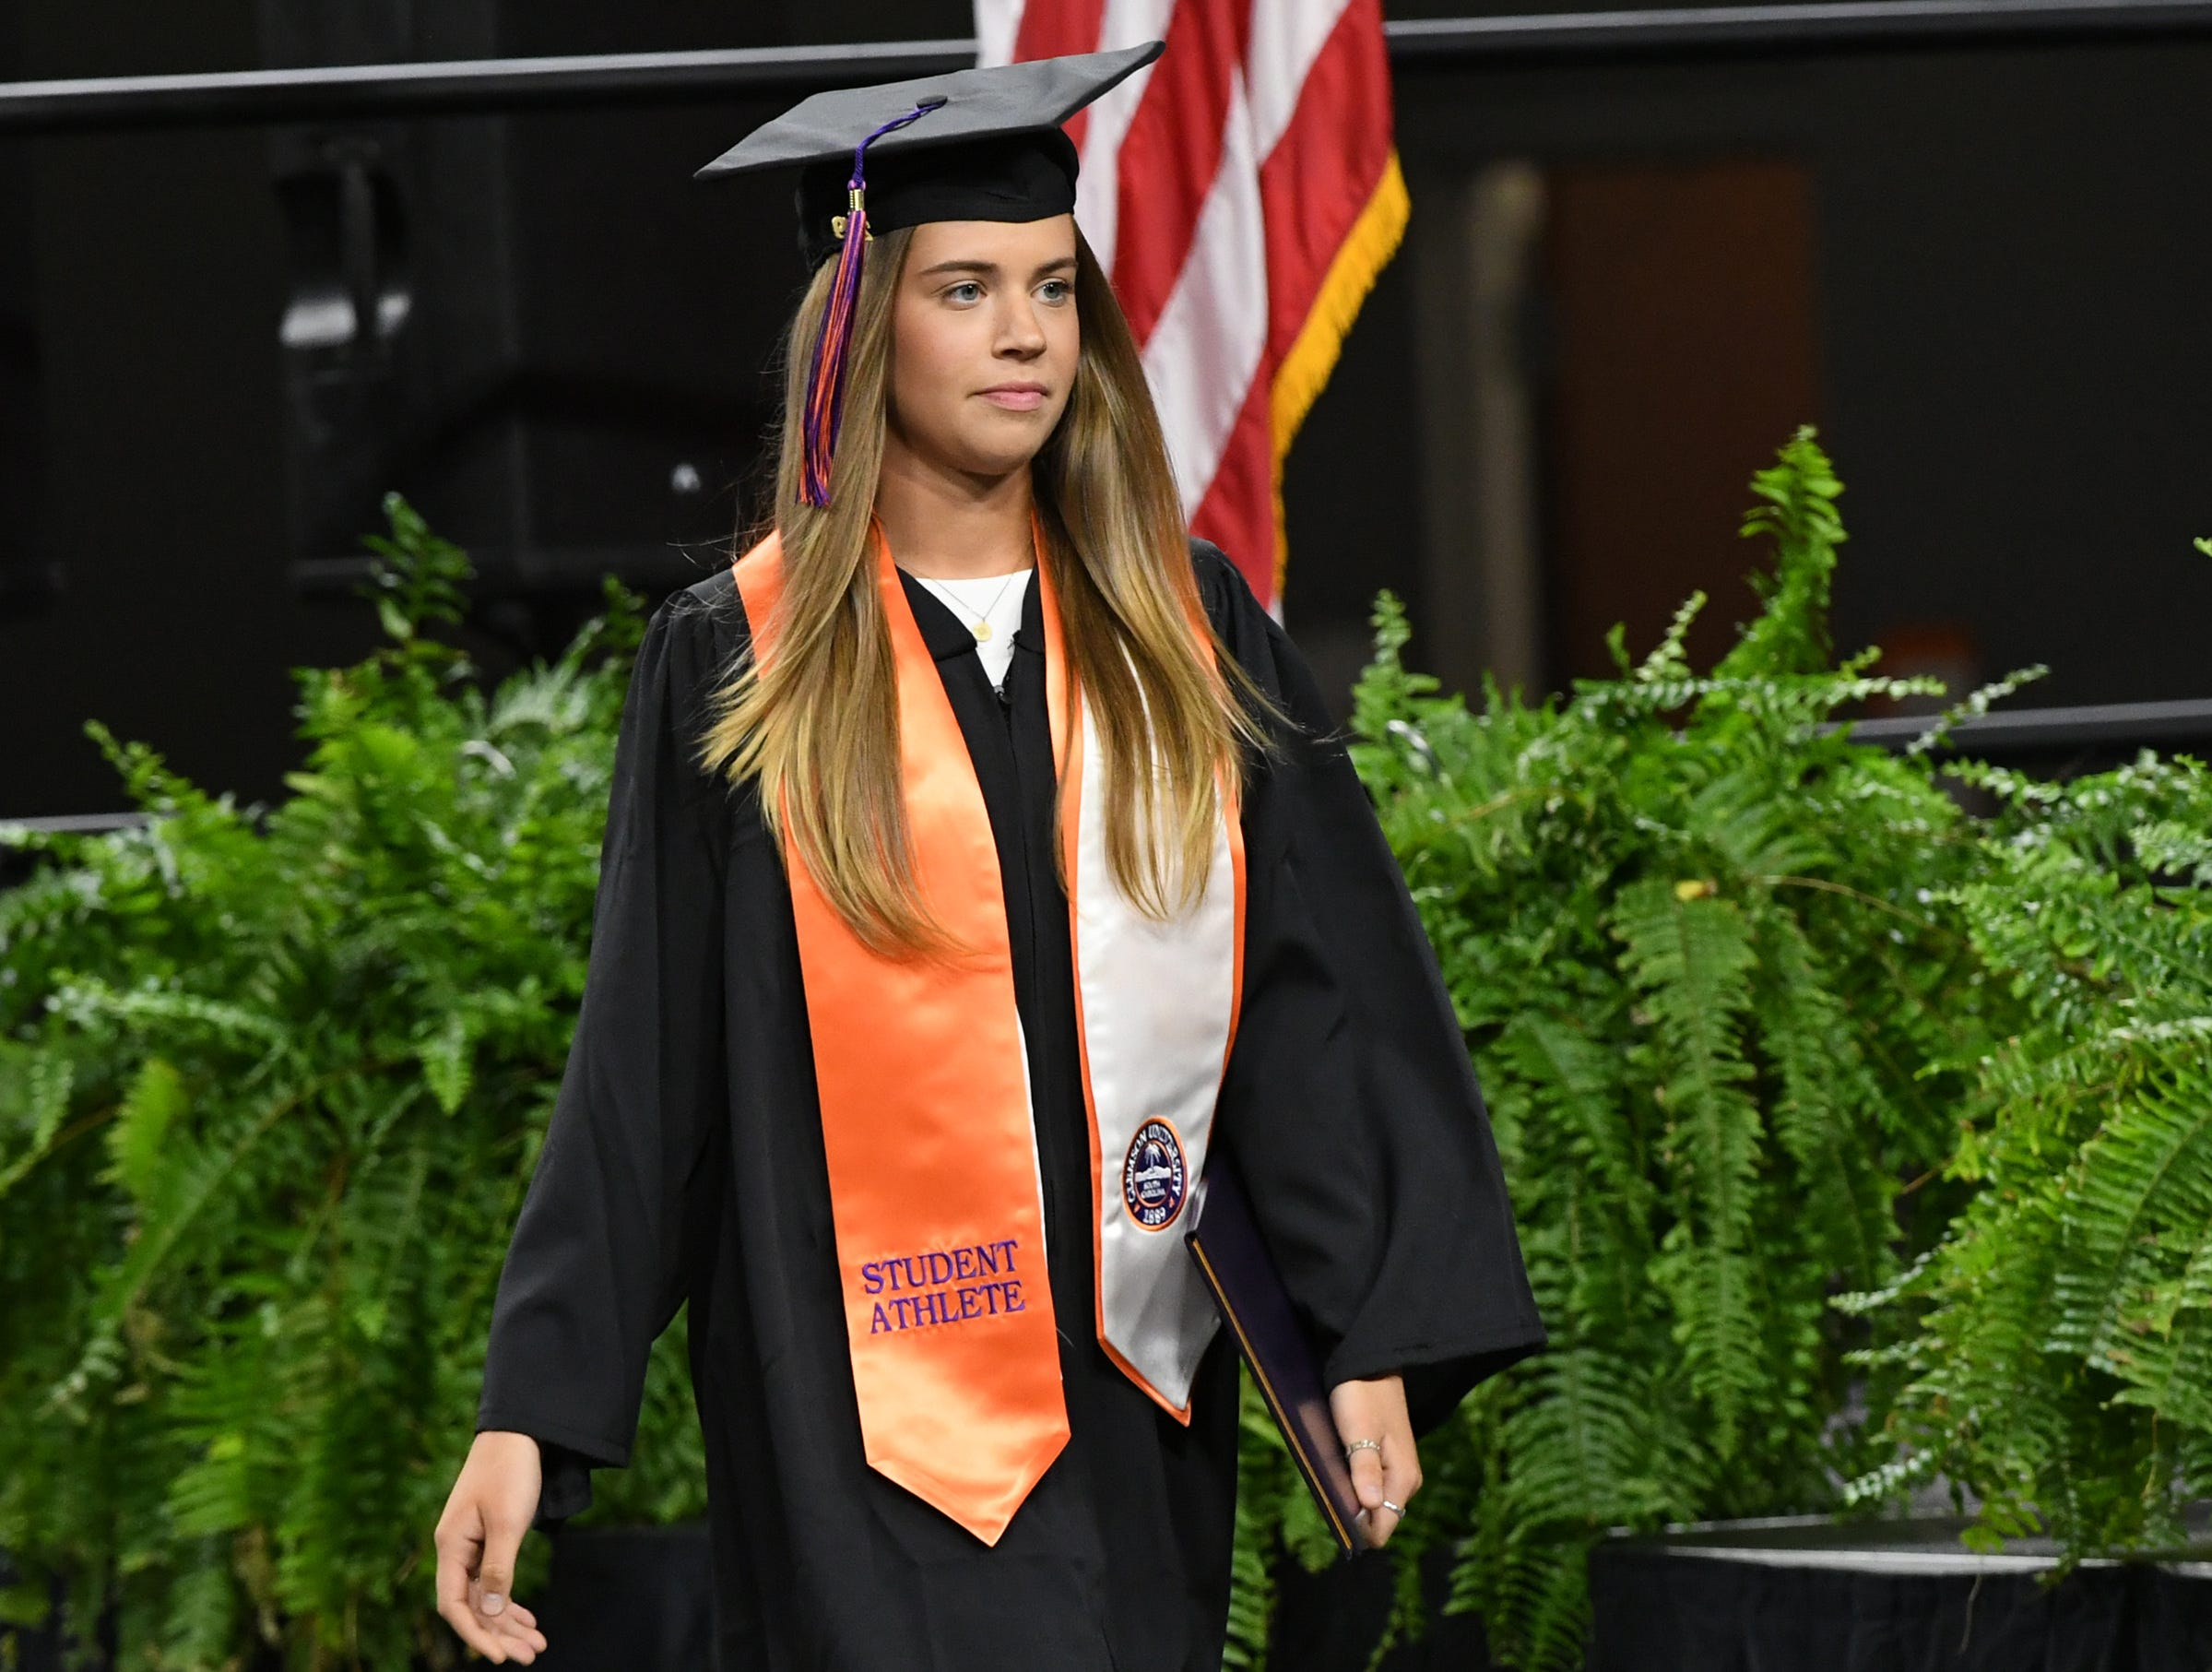 Erin Murphy, former rowing team member, earns a bachelor of science in parks, recreation, tourism, management during Clemson University commencement ceremonies in Littlejohn Coliseum in Clemson Friday, May 10, 2019.